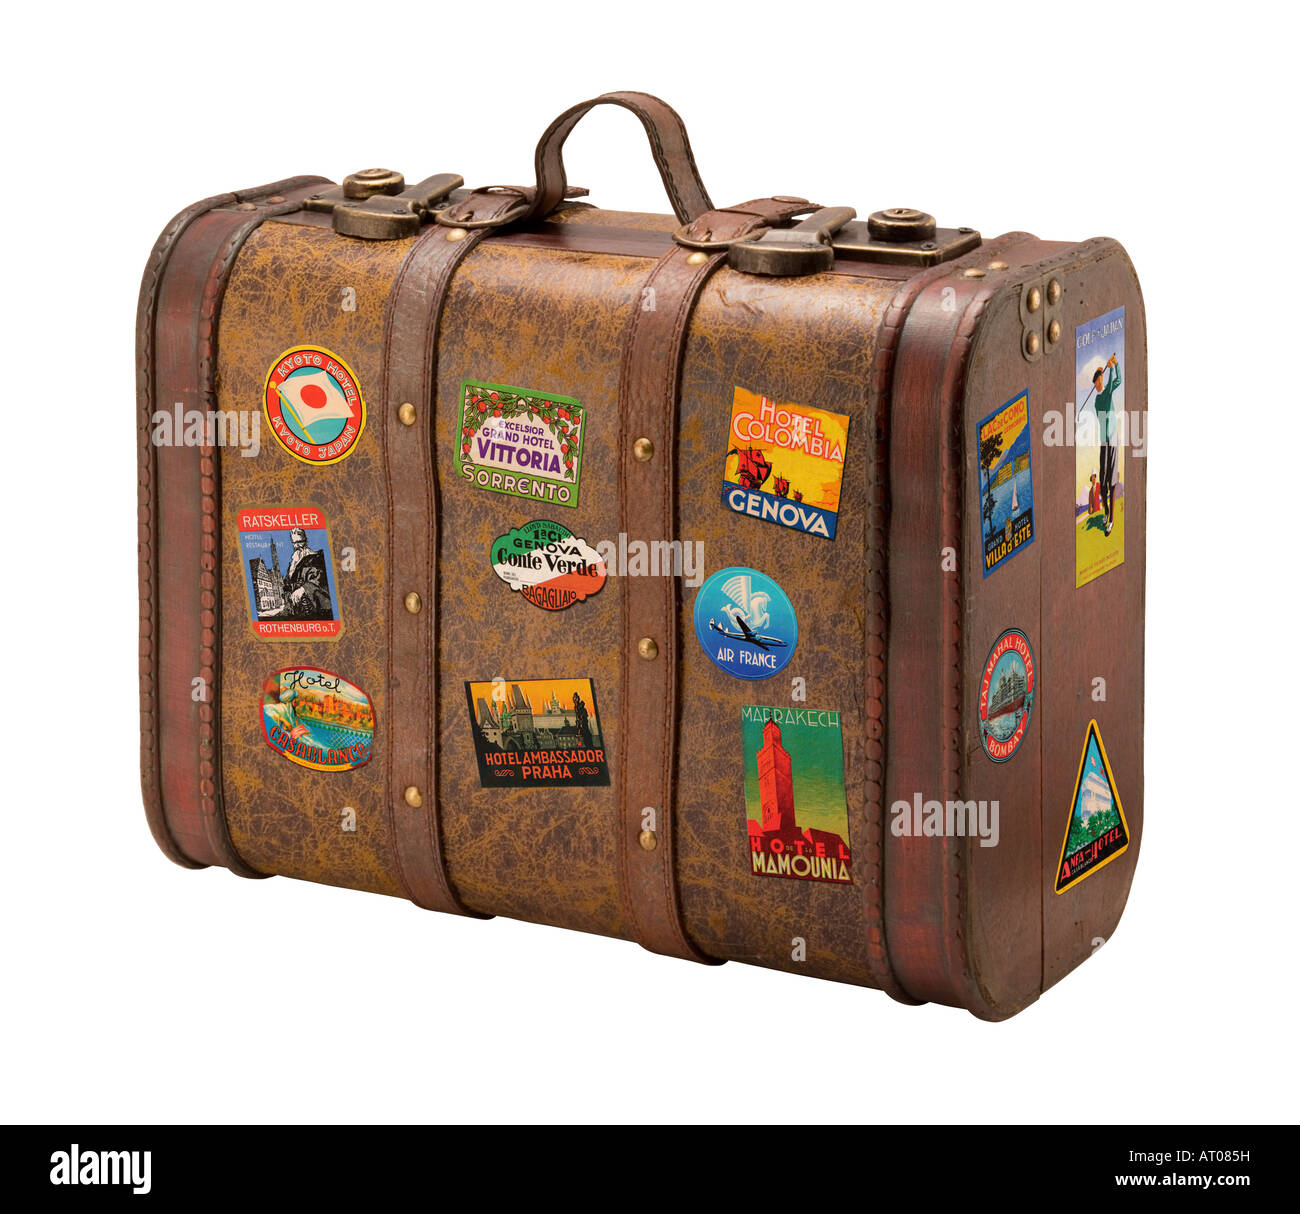 Old Suitcase isolated on a white background. - Stock Image